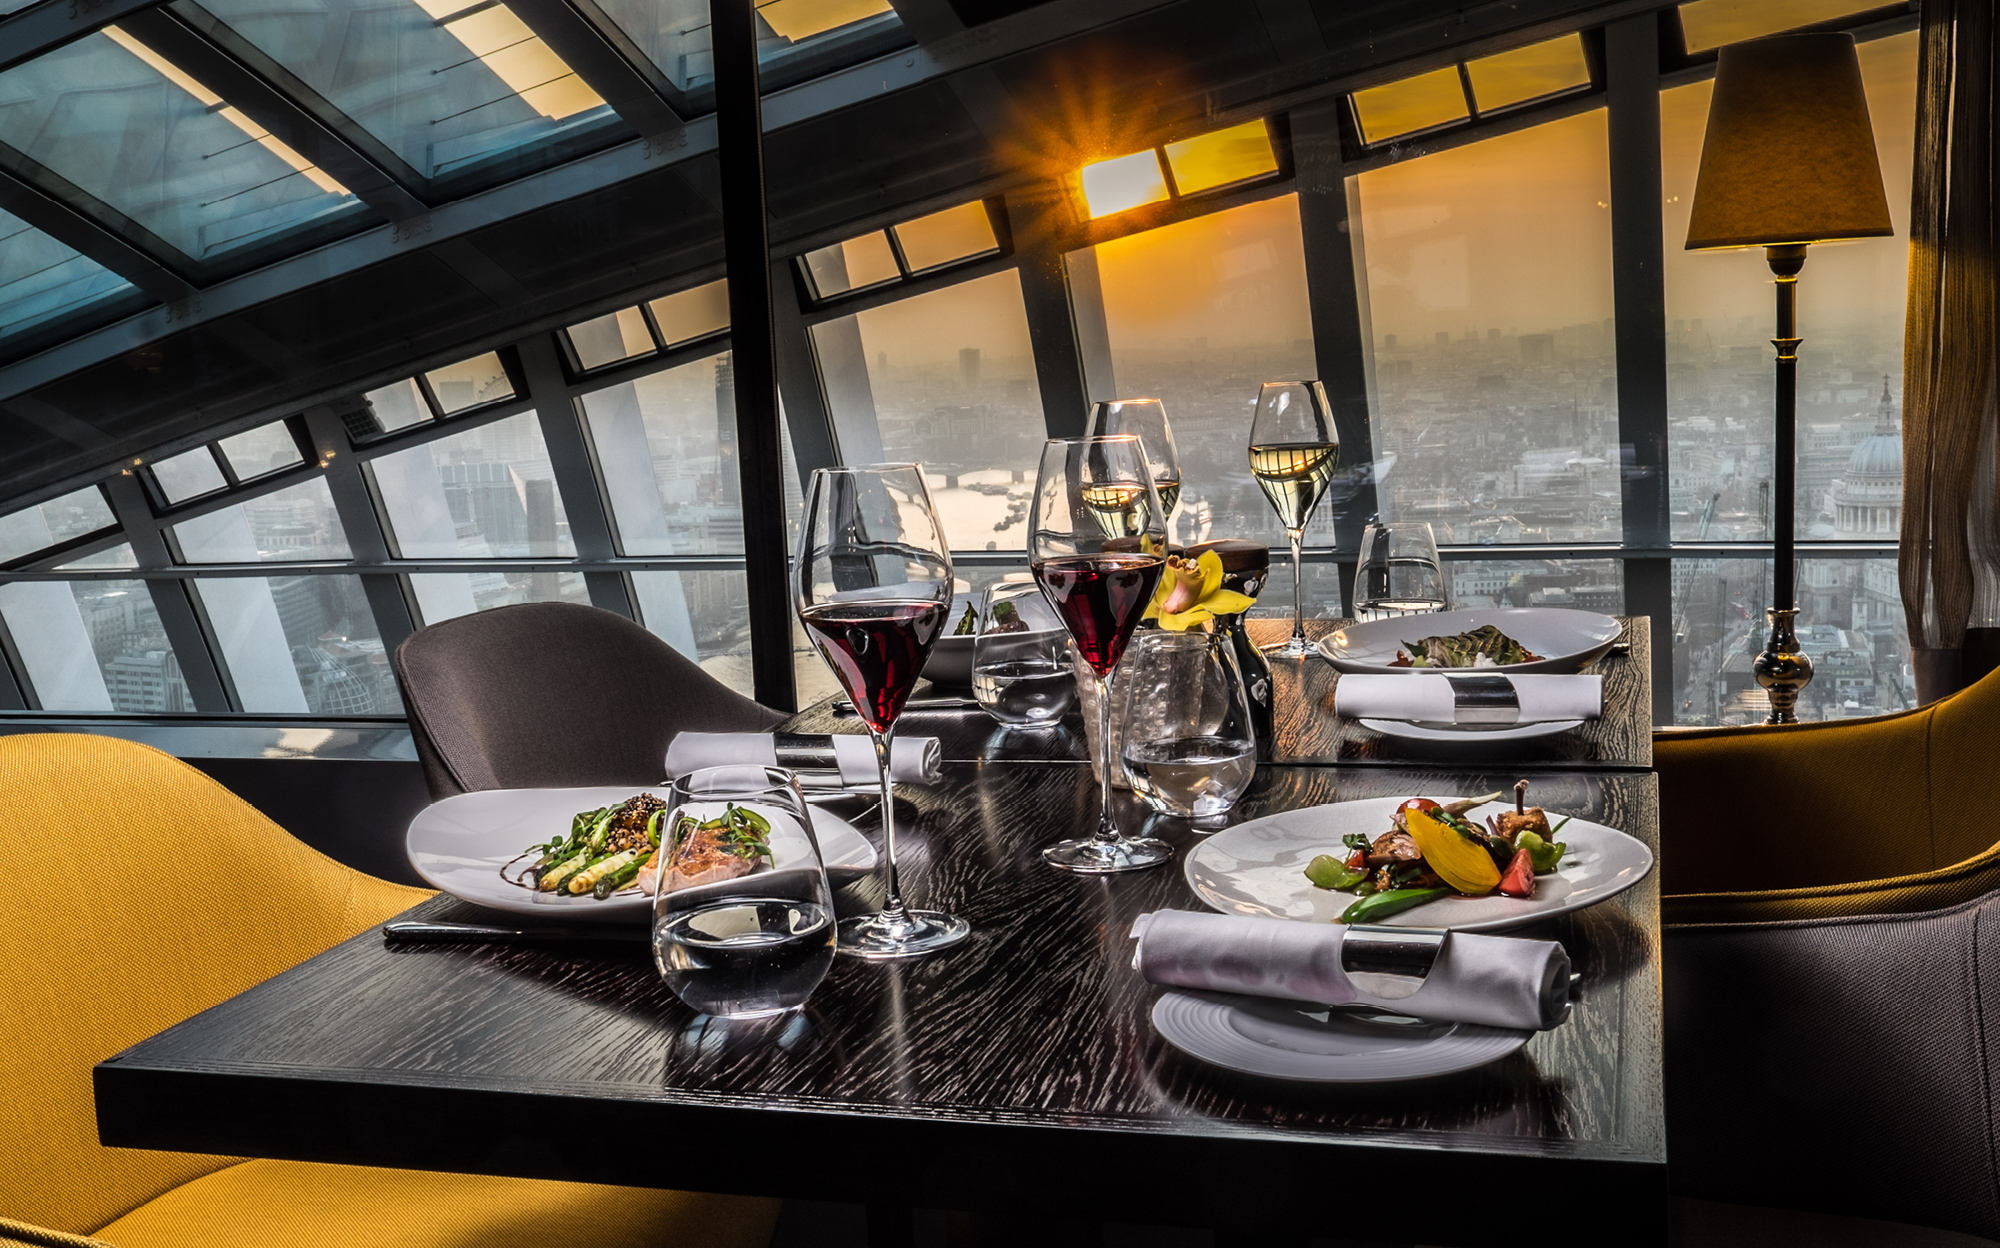 Fenchurch boasts striking views across the City of London